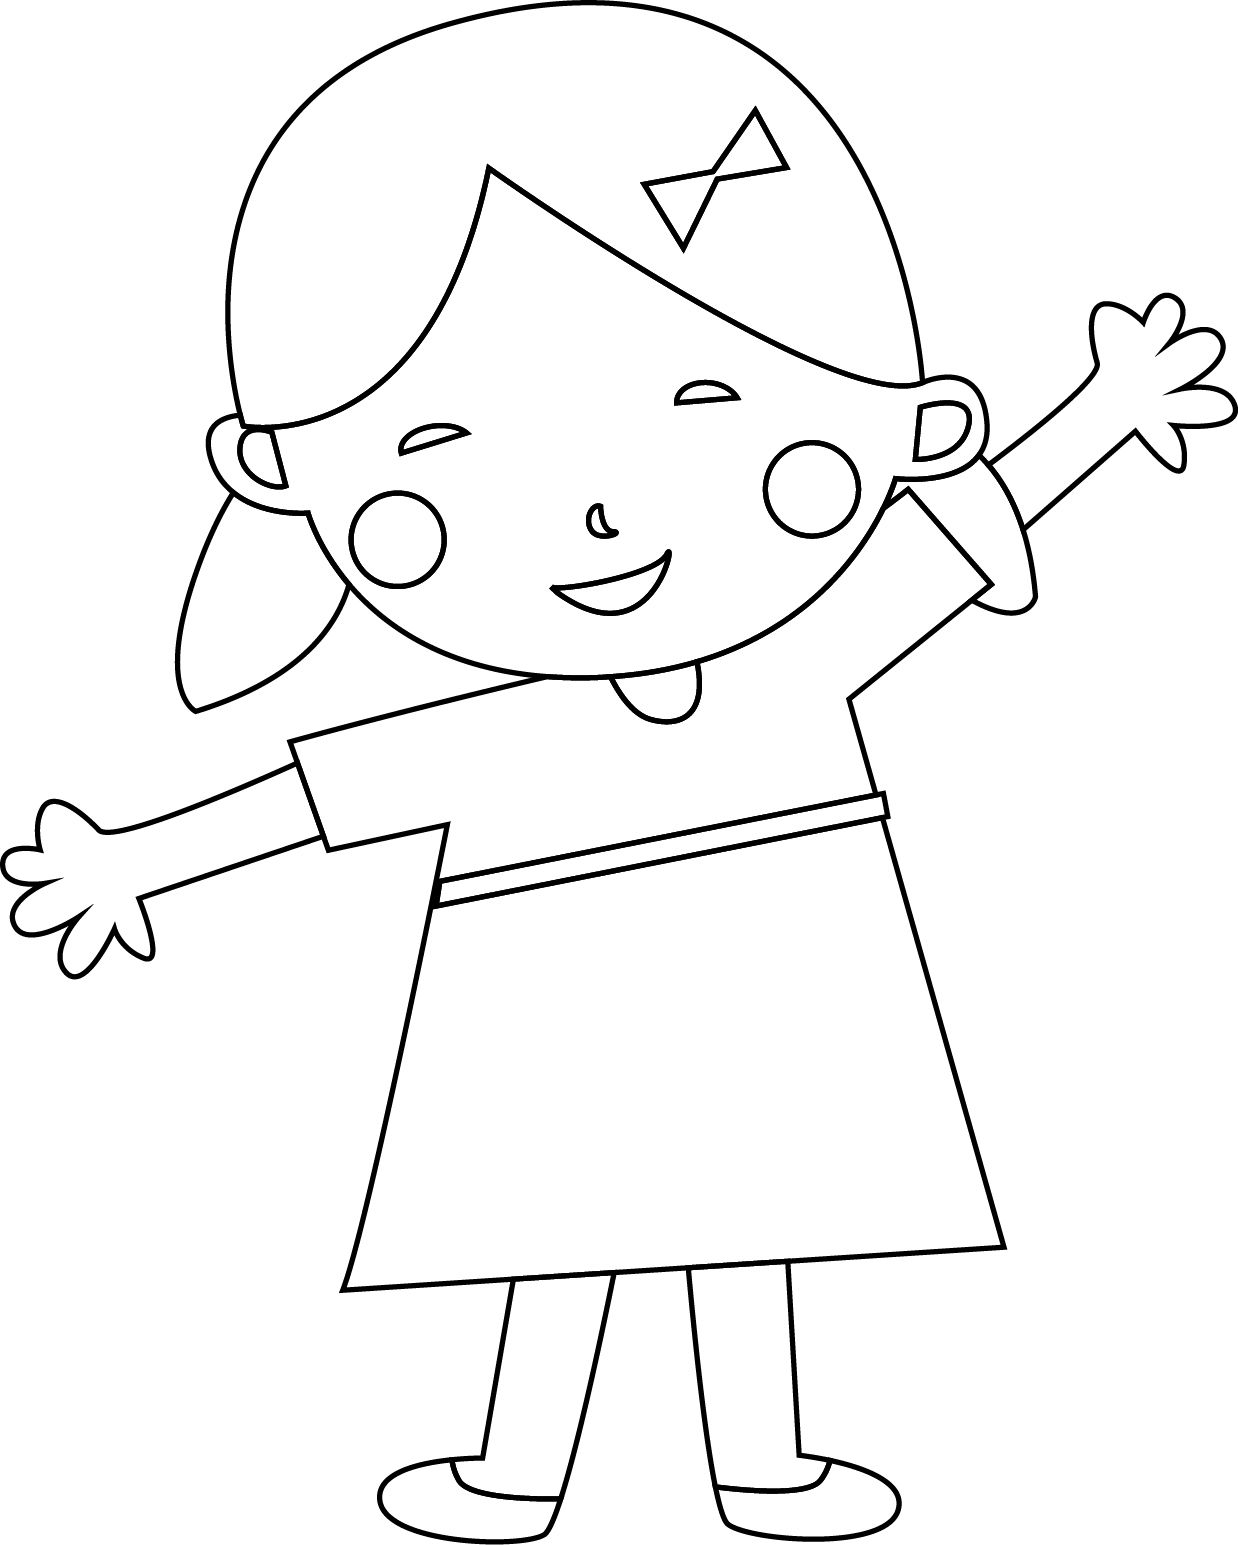 Child Coloring Page | Child